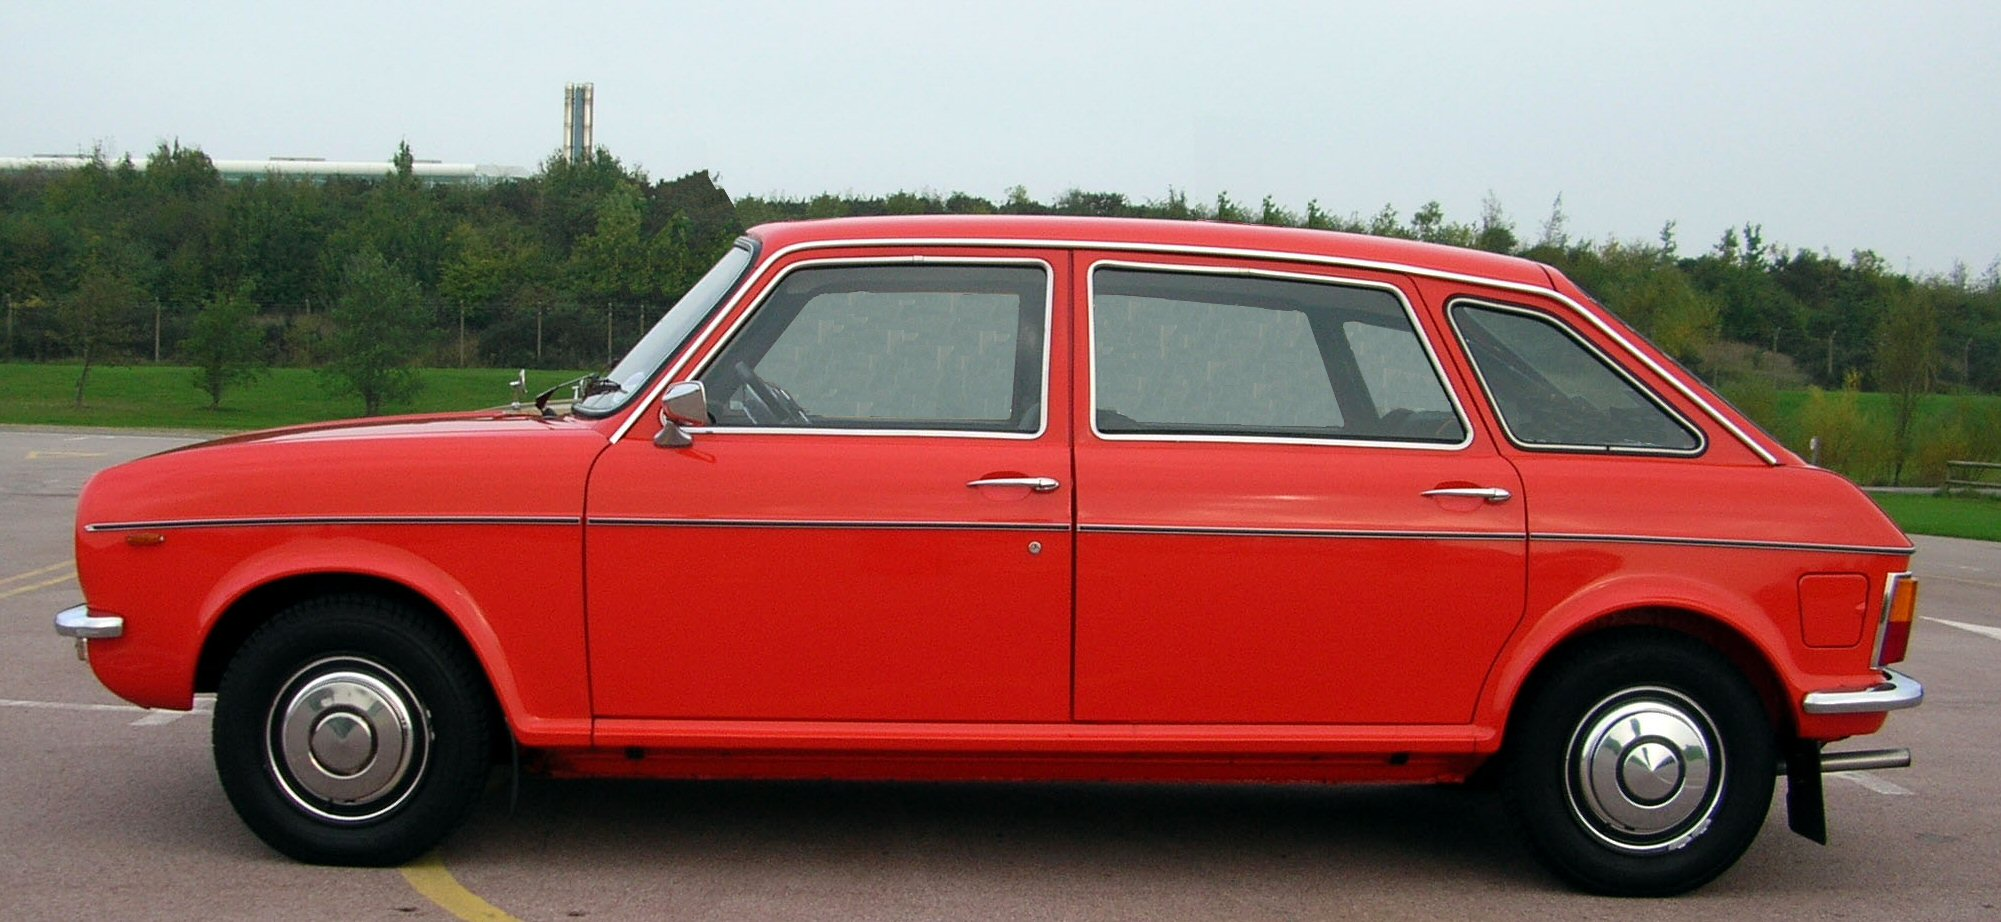 File:Austin Maxi 1980 left side view.jpg - Wikimedia Commons